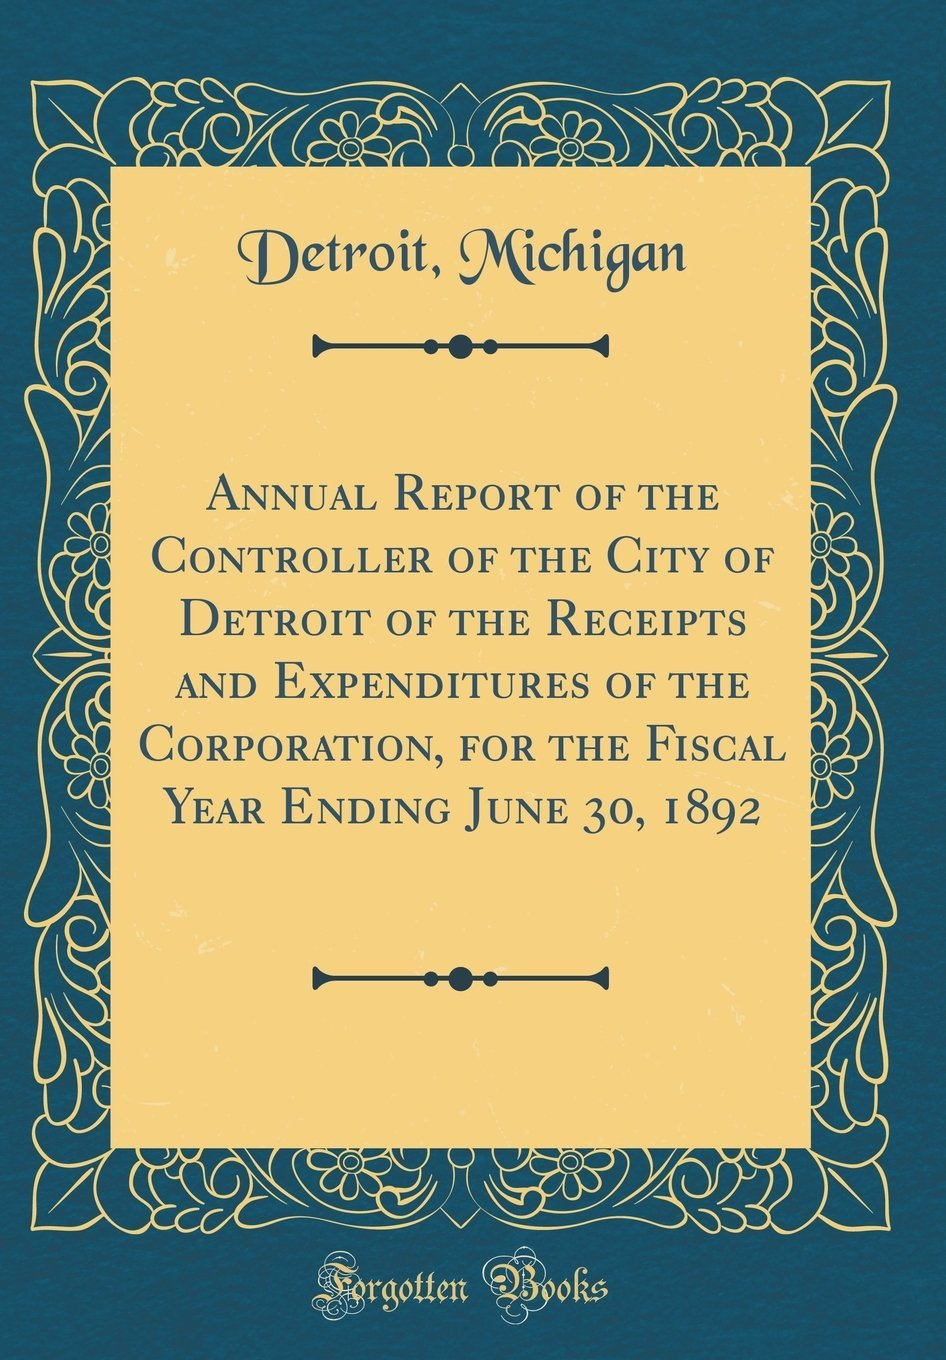 Annual Report of the Controller of the City of Detroit of the Receipts and Expenditures of the Corporation, for the Fiscal Year Ending June 30, 1892 (Classic Reprint) pdf